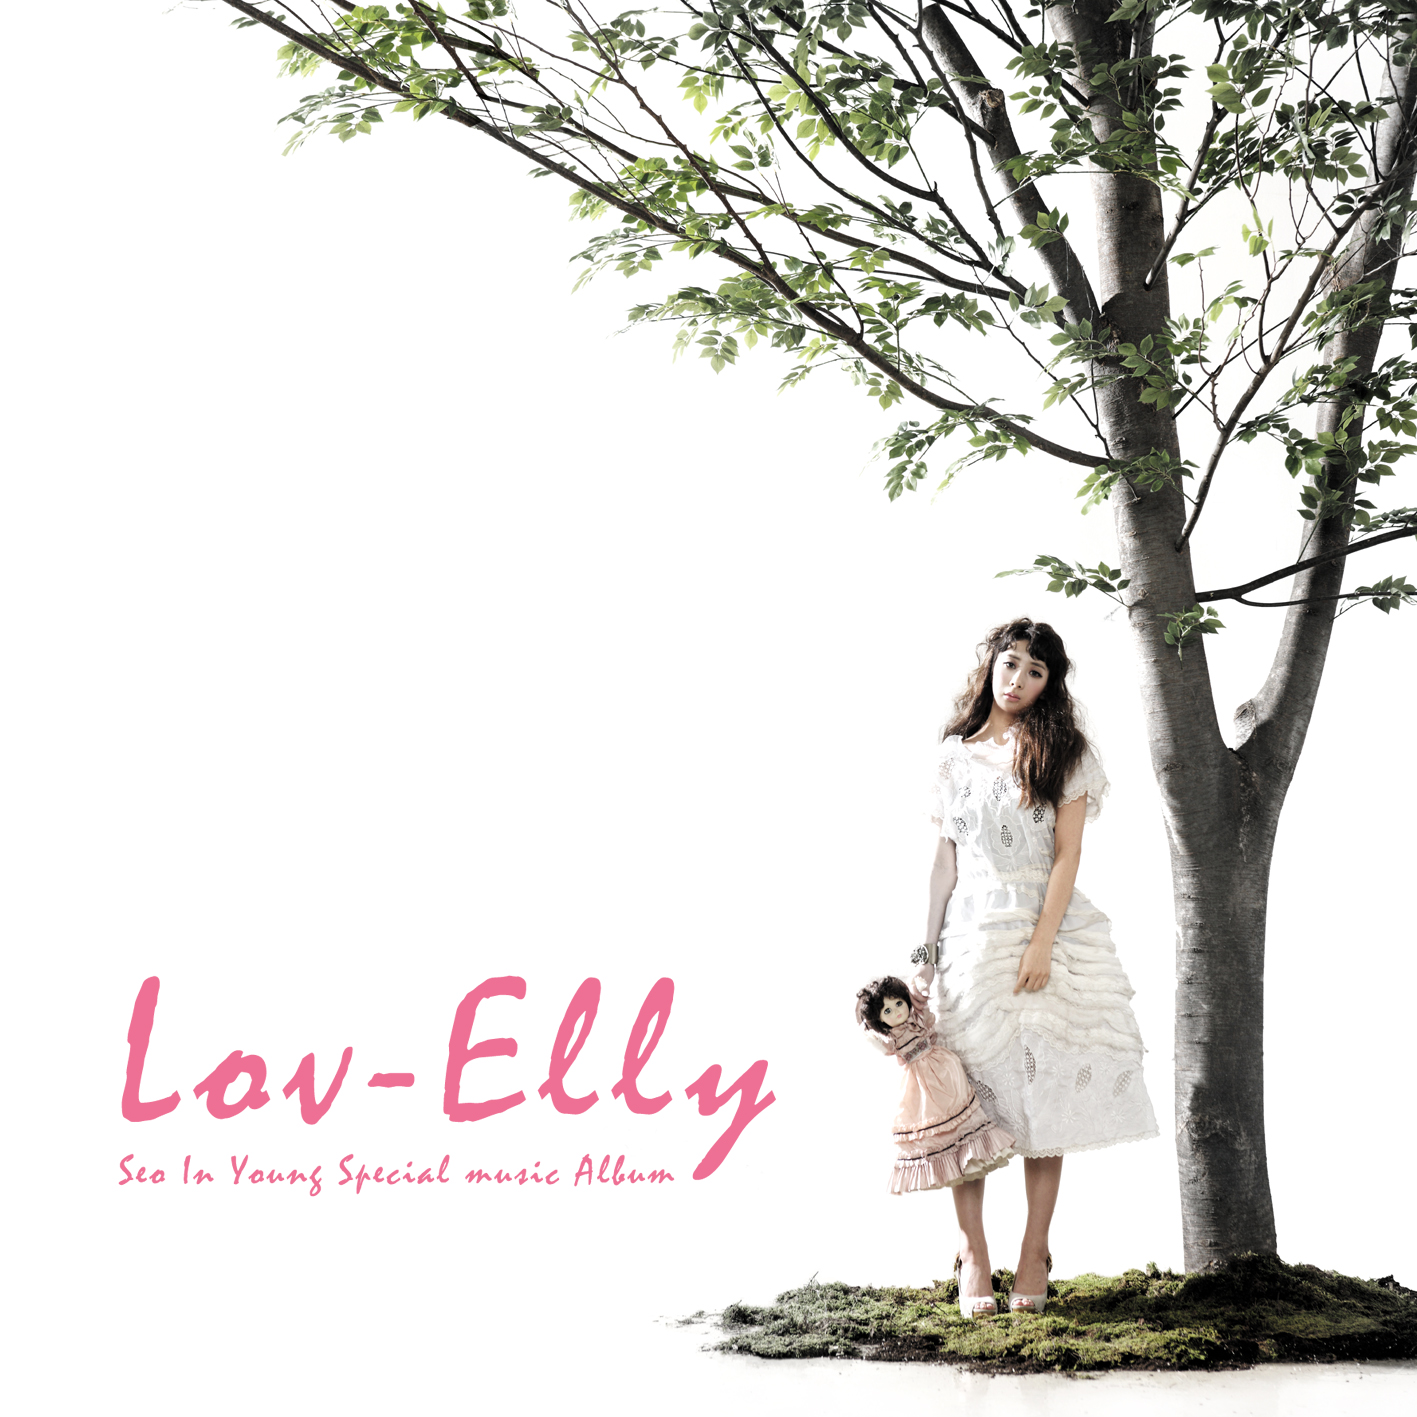 20151121.80 Seo In Young - Lov-Elly cover.jpg